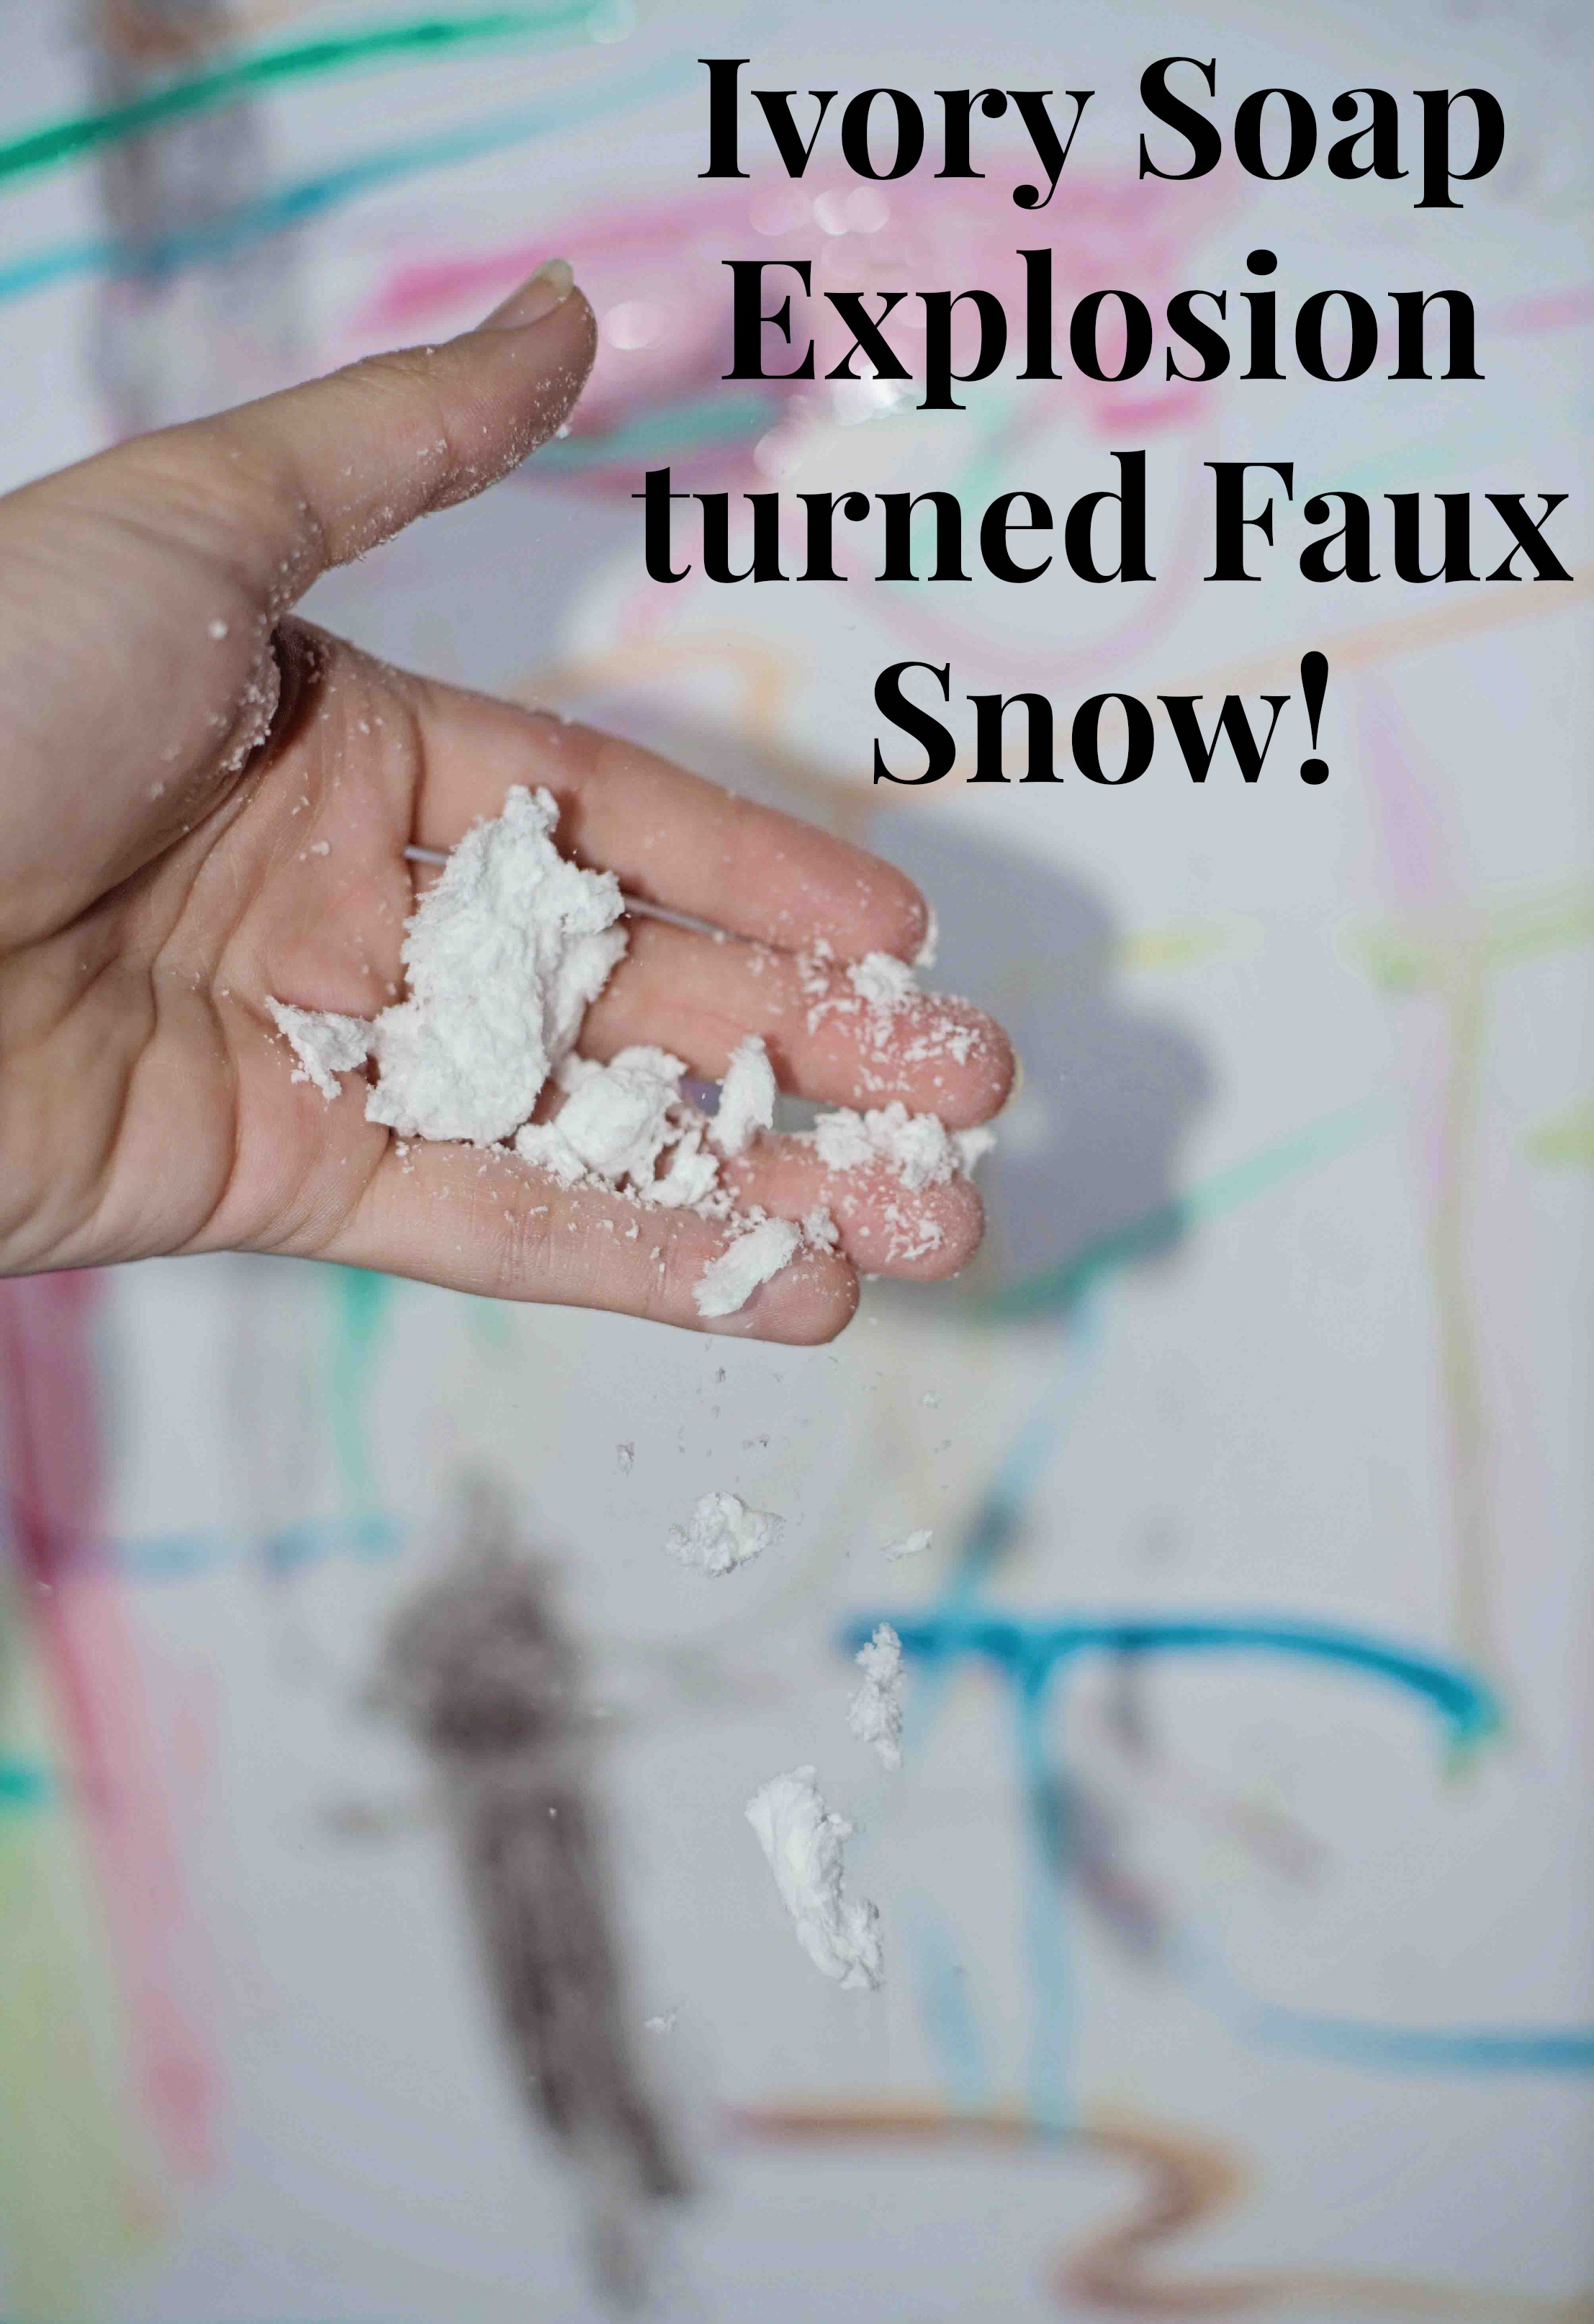 Ivory soap explosion turned faux snow by crumbling!